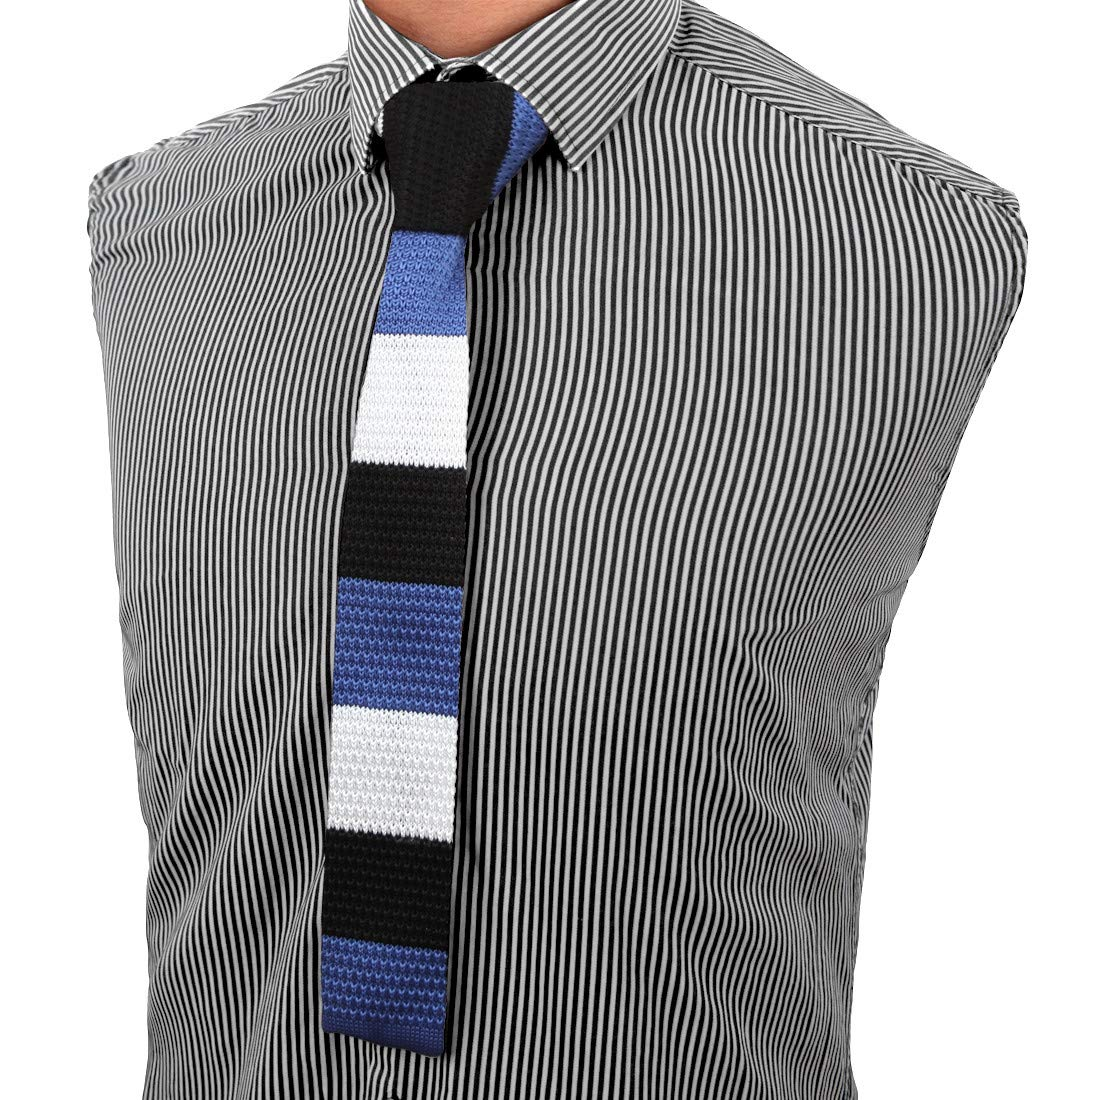 Dan Smith C.C.G.A.044 Black White Popular Microfiber Knitted Skinny Tie for Working